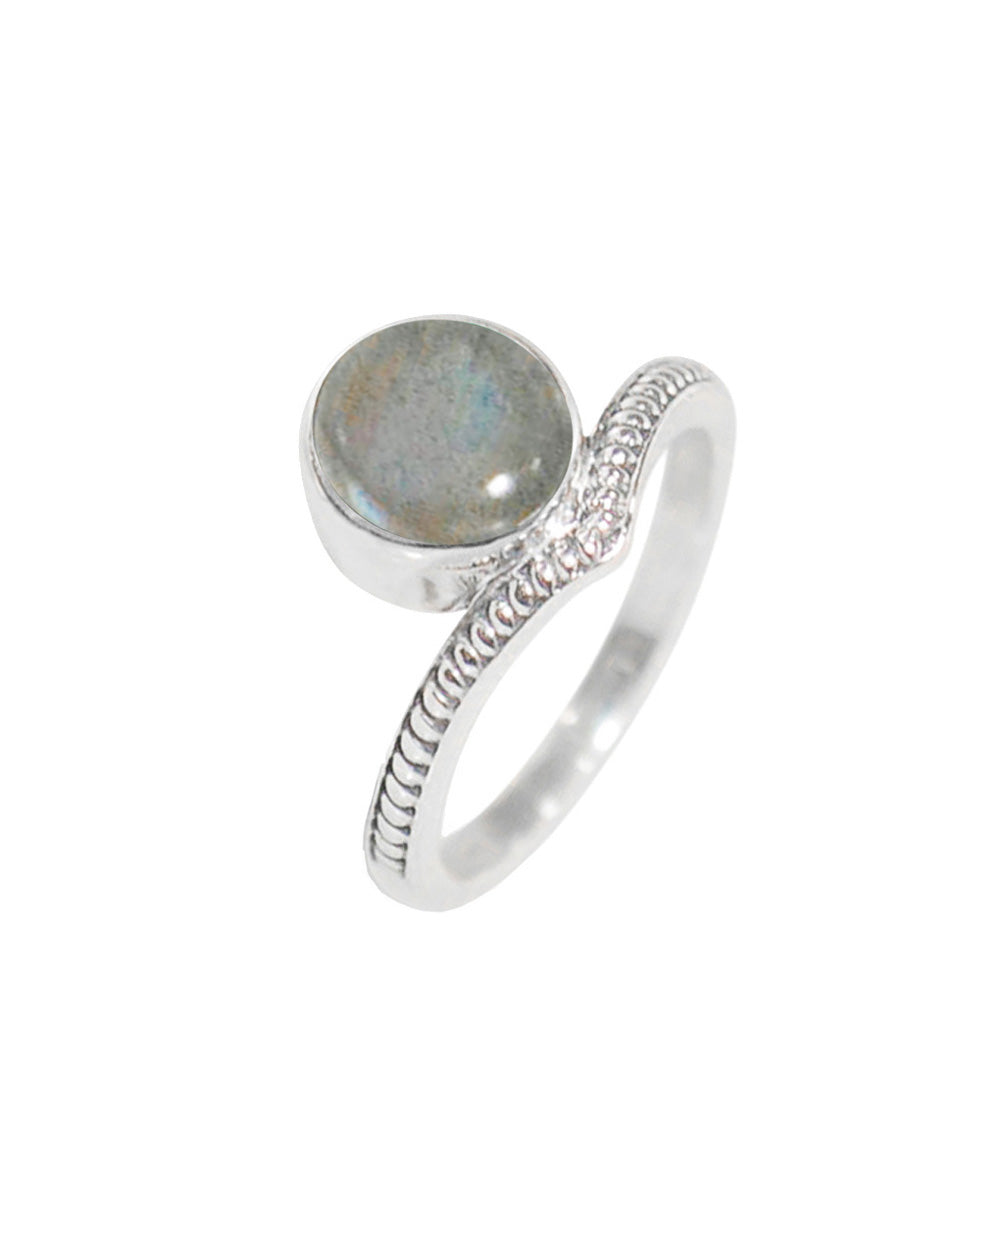 Enlightened Sterling Silver Ring - Labradorite